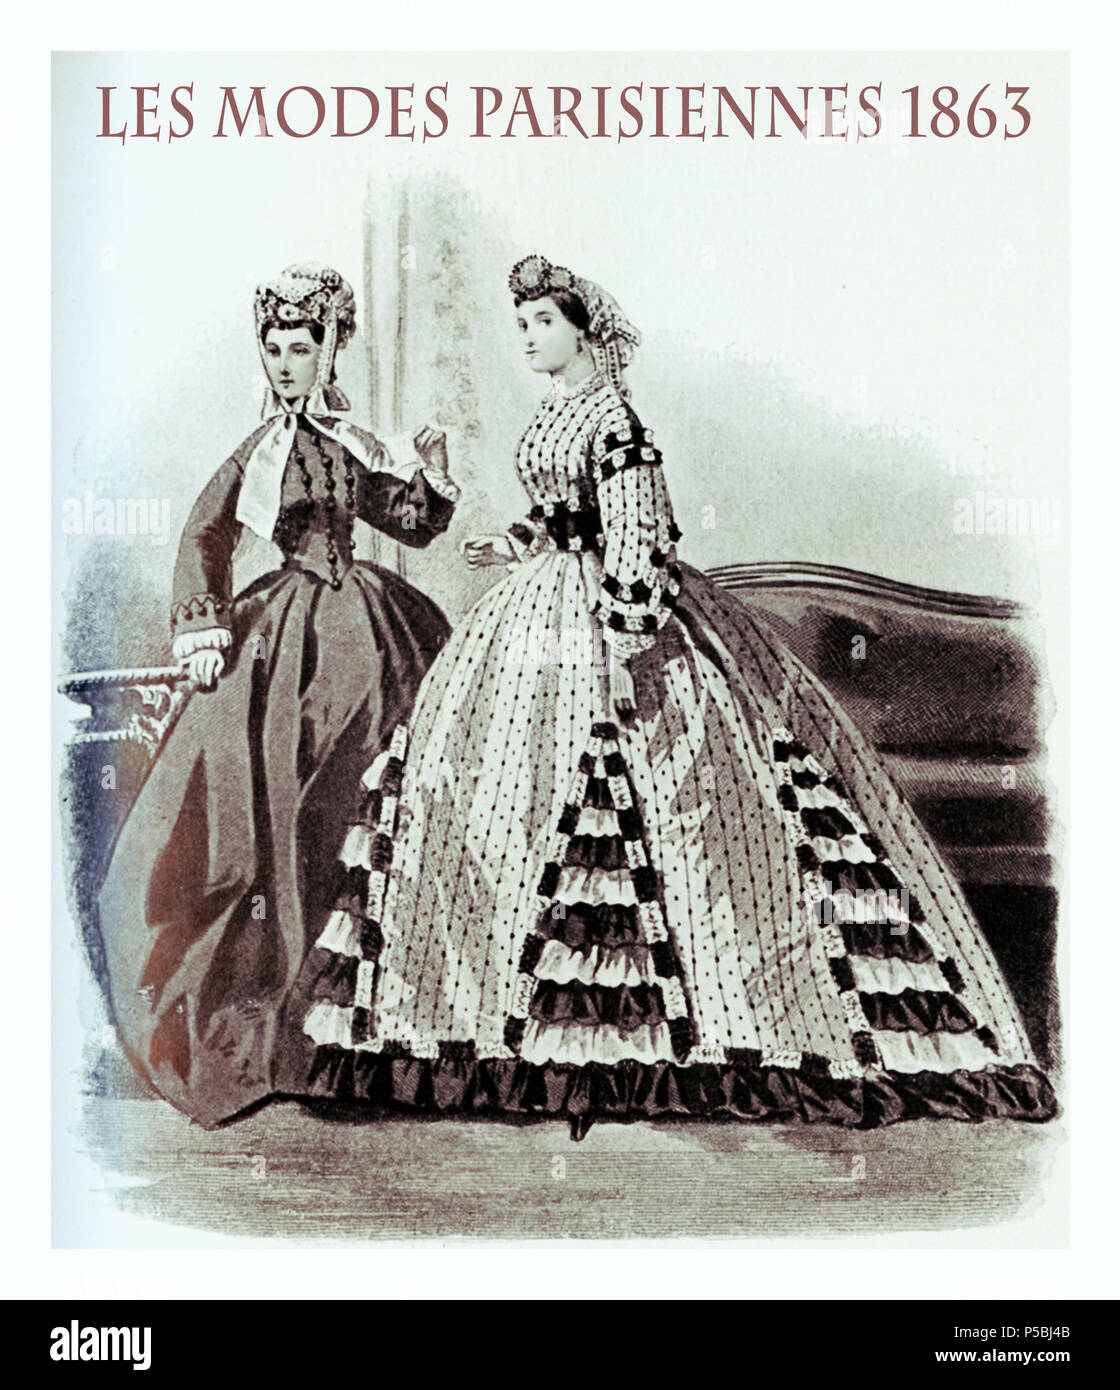 1863 fashion, French magazine Les Modes Parisiennes presents two young ladies standing indoor  with fancy cloths and hairdressing - Stock Image